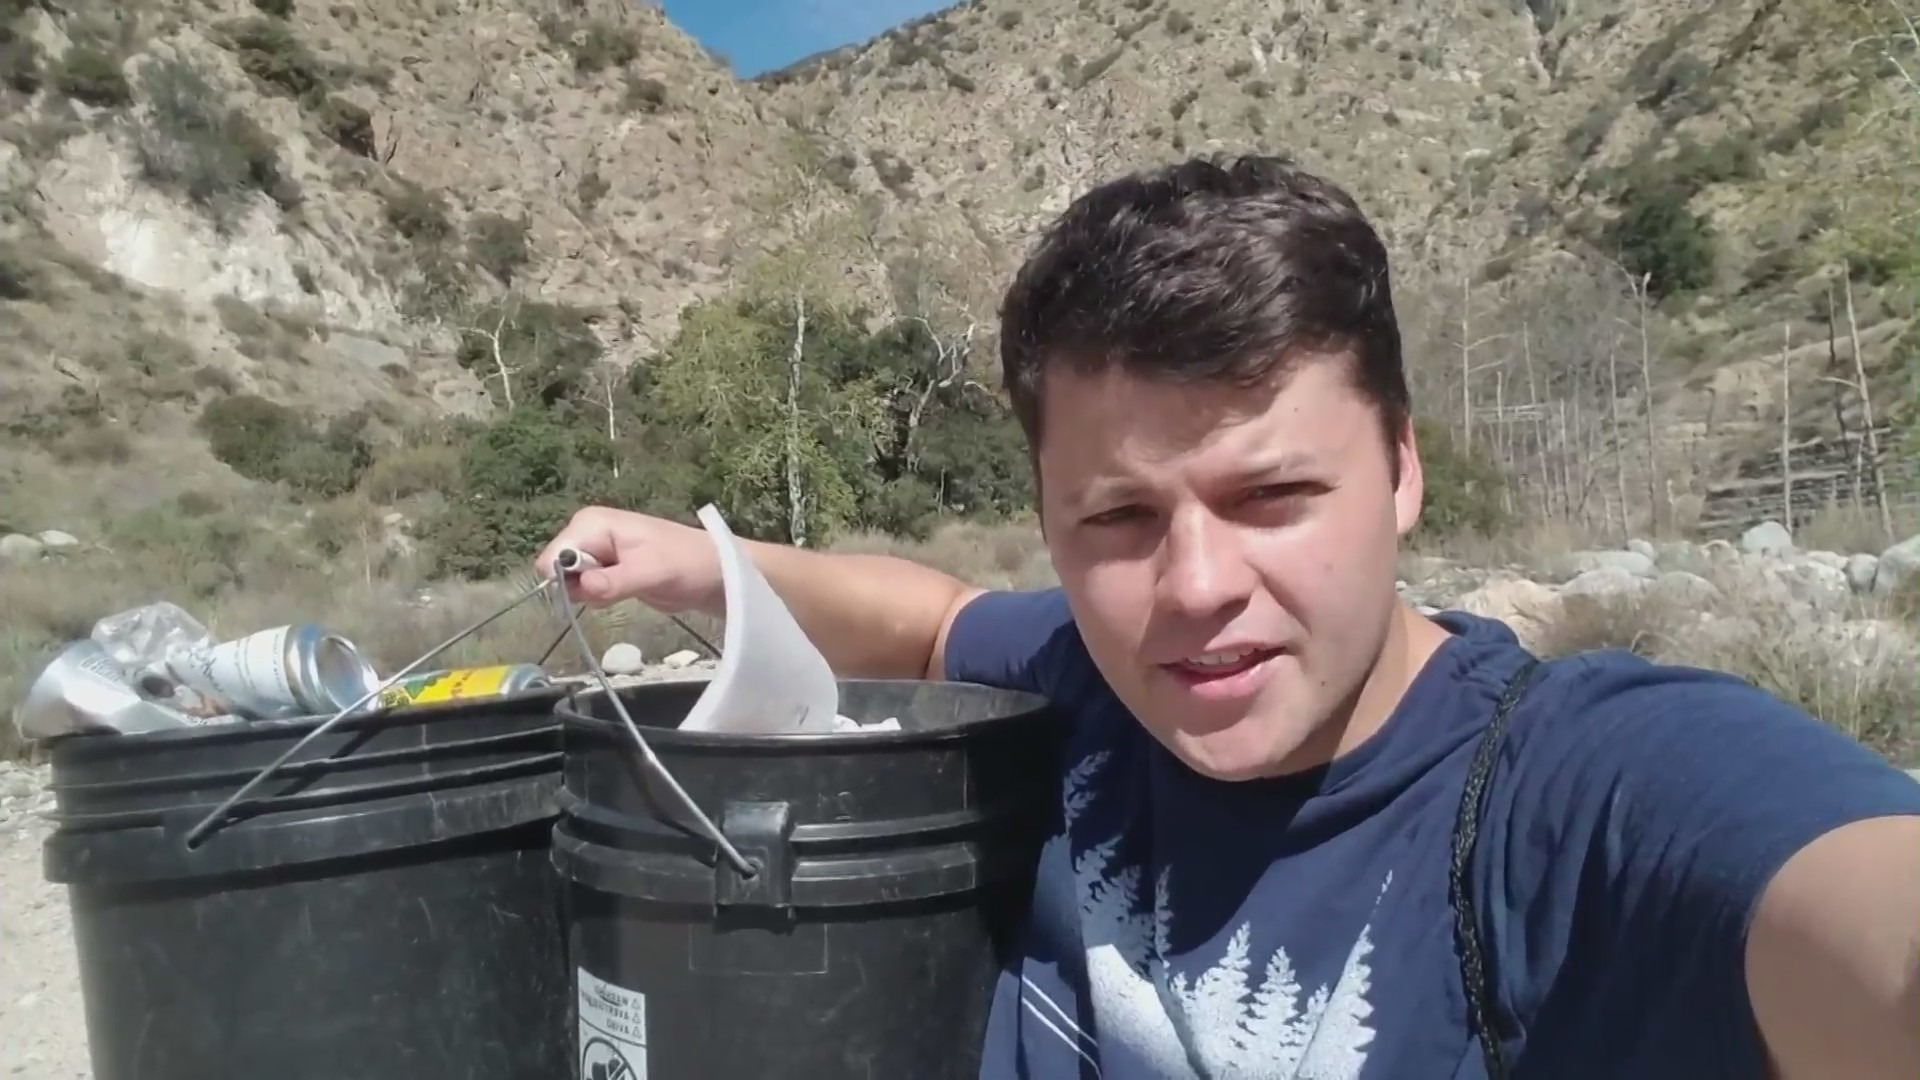 Edgar Mcgregor is seen cleaning up Eaton Canyon Park in this undated video.